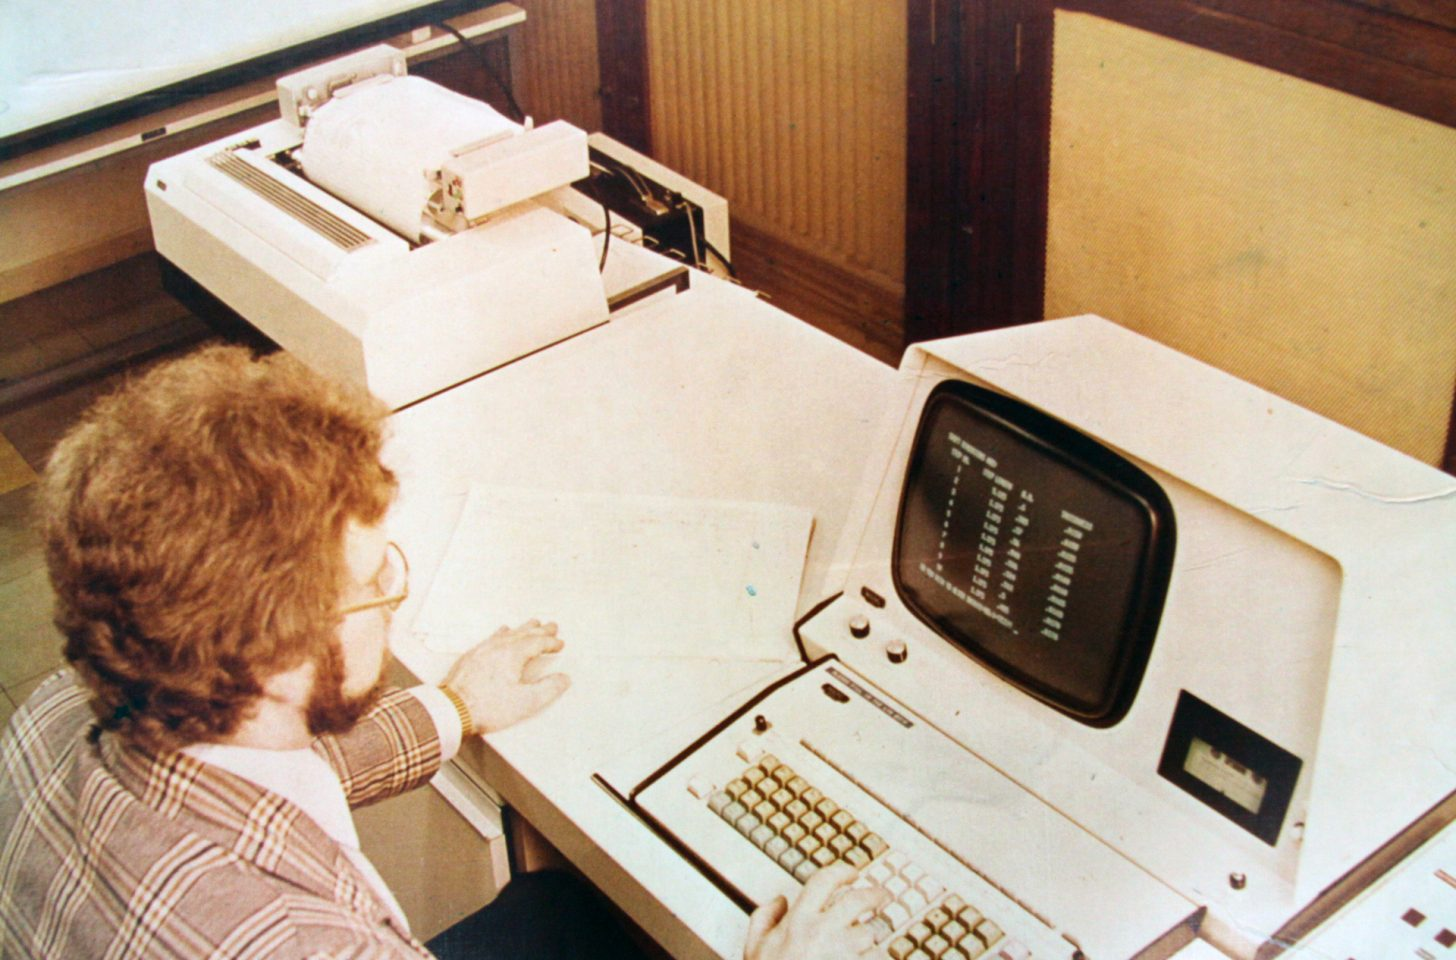 Promotional photograph from Accles, mid 70s. The original caption read: 'Golf Shaft design by computer! At the TI Steel Tube Division's Development Engineering Department, this computer rapidly analyses the effects of different parameters on the design of new types of Apollo golf shaft.'